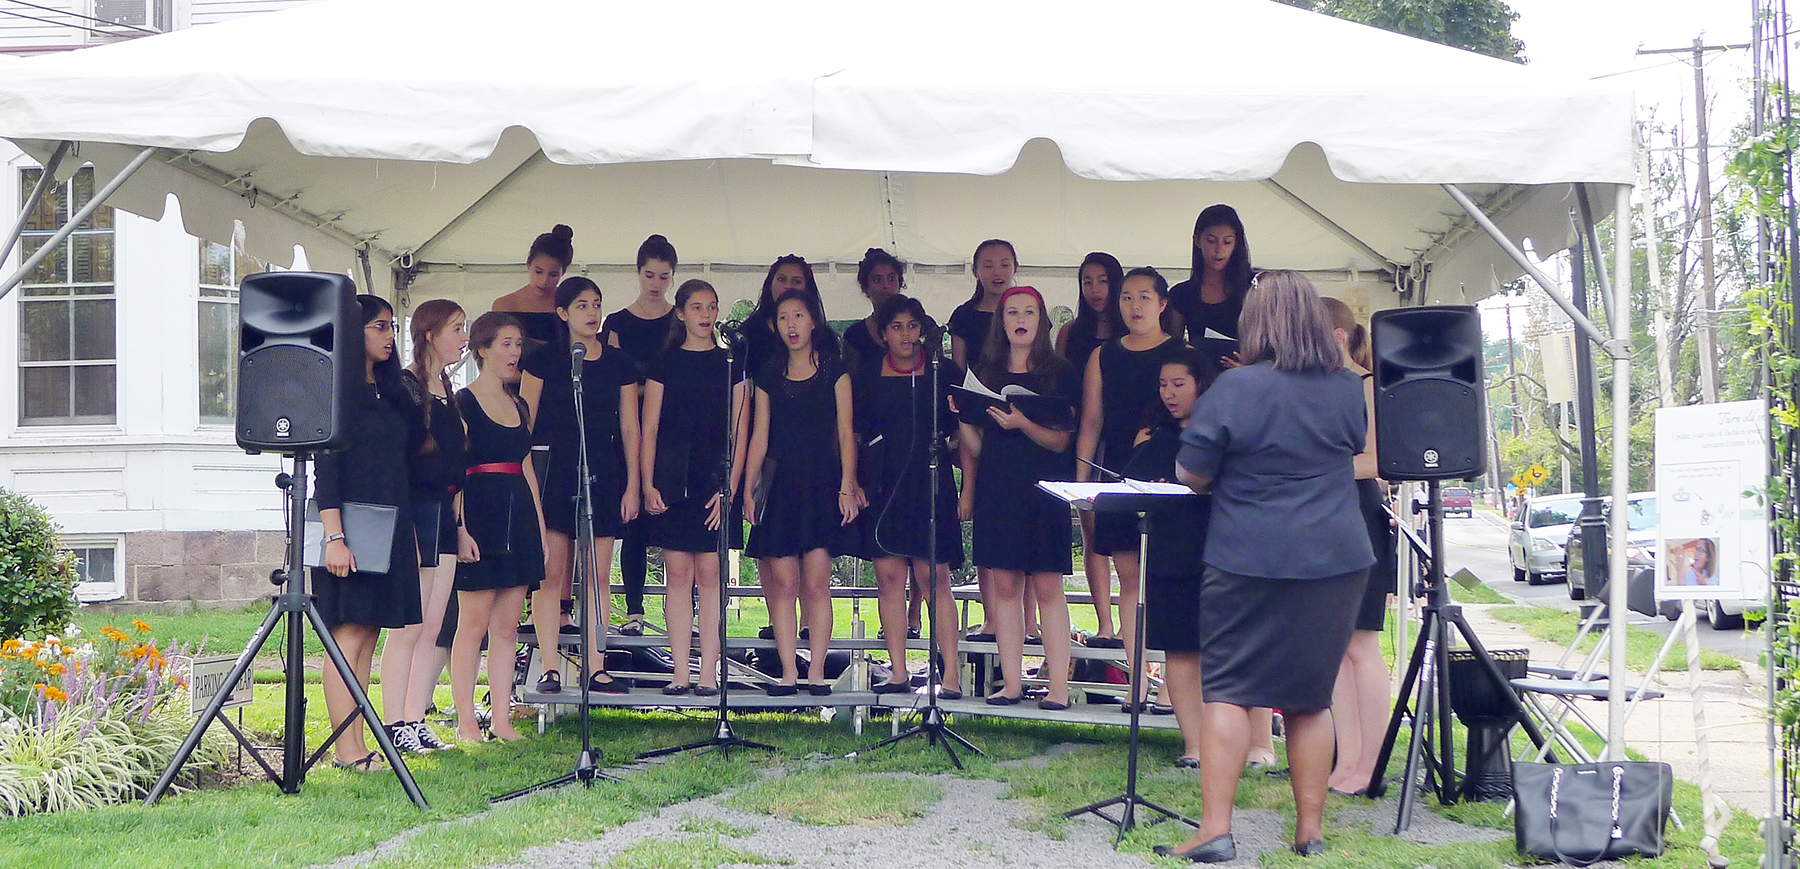 We featured the Princeton Girl Choir last year and their performance was amazing!